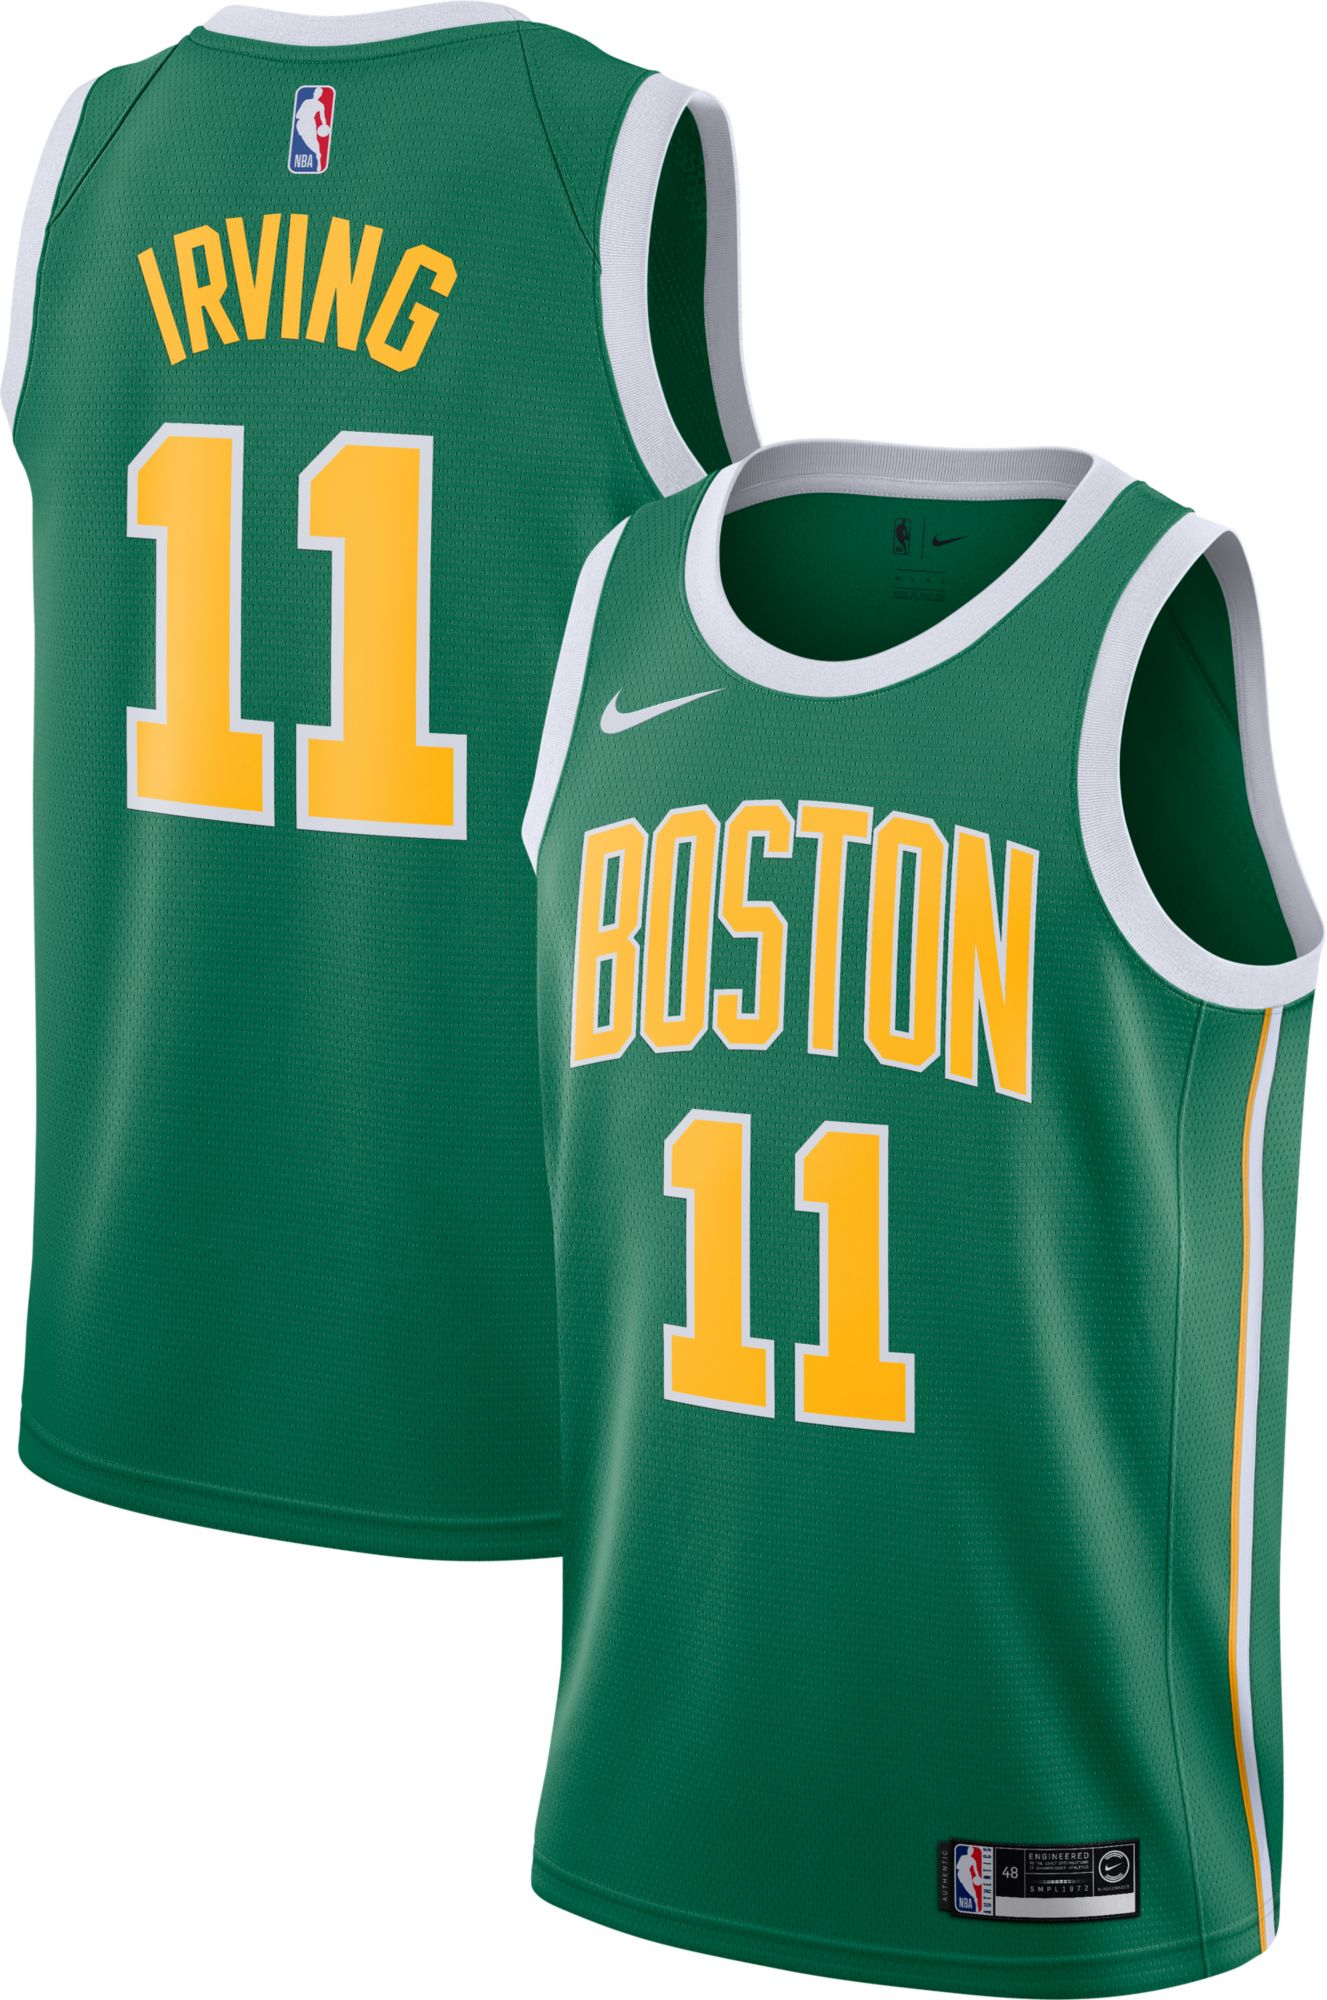 a1be4ae9492 Nike Men s Boston Celtics Kyrie Irving Dri-FIT Earned Edition ...